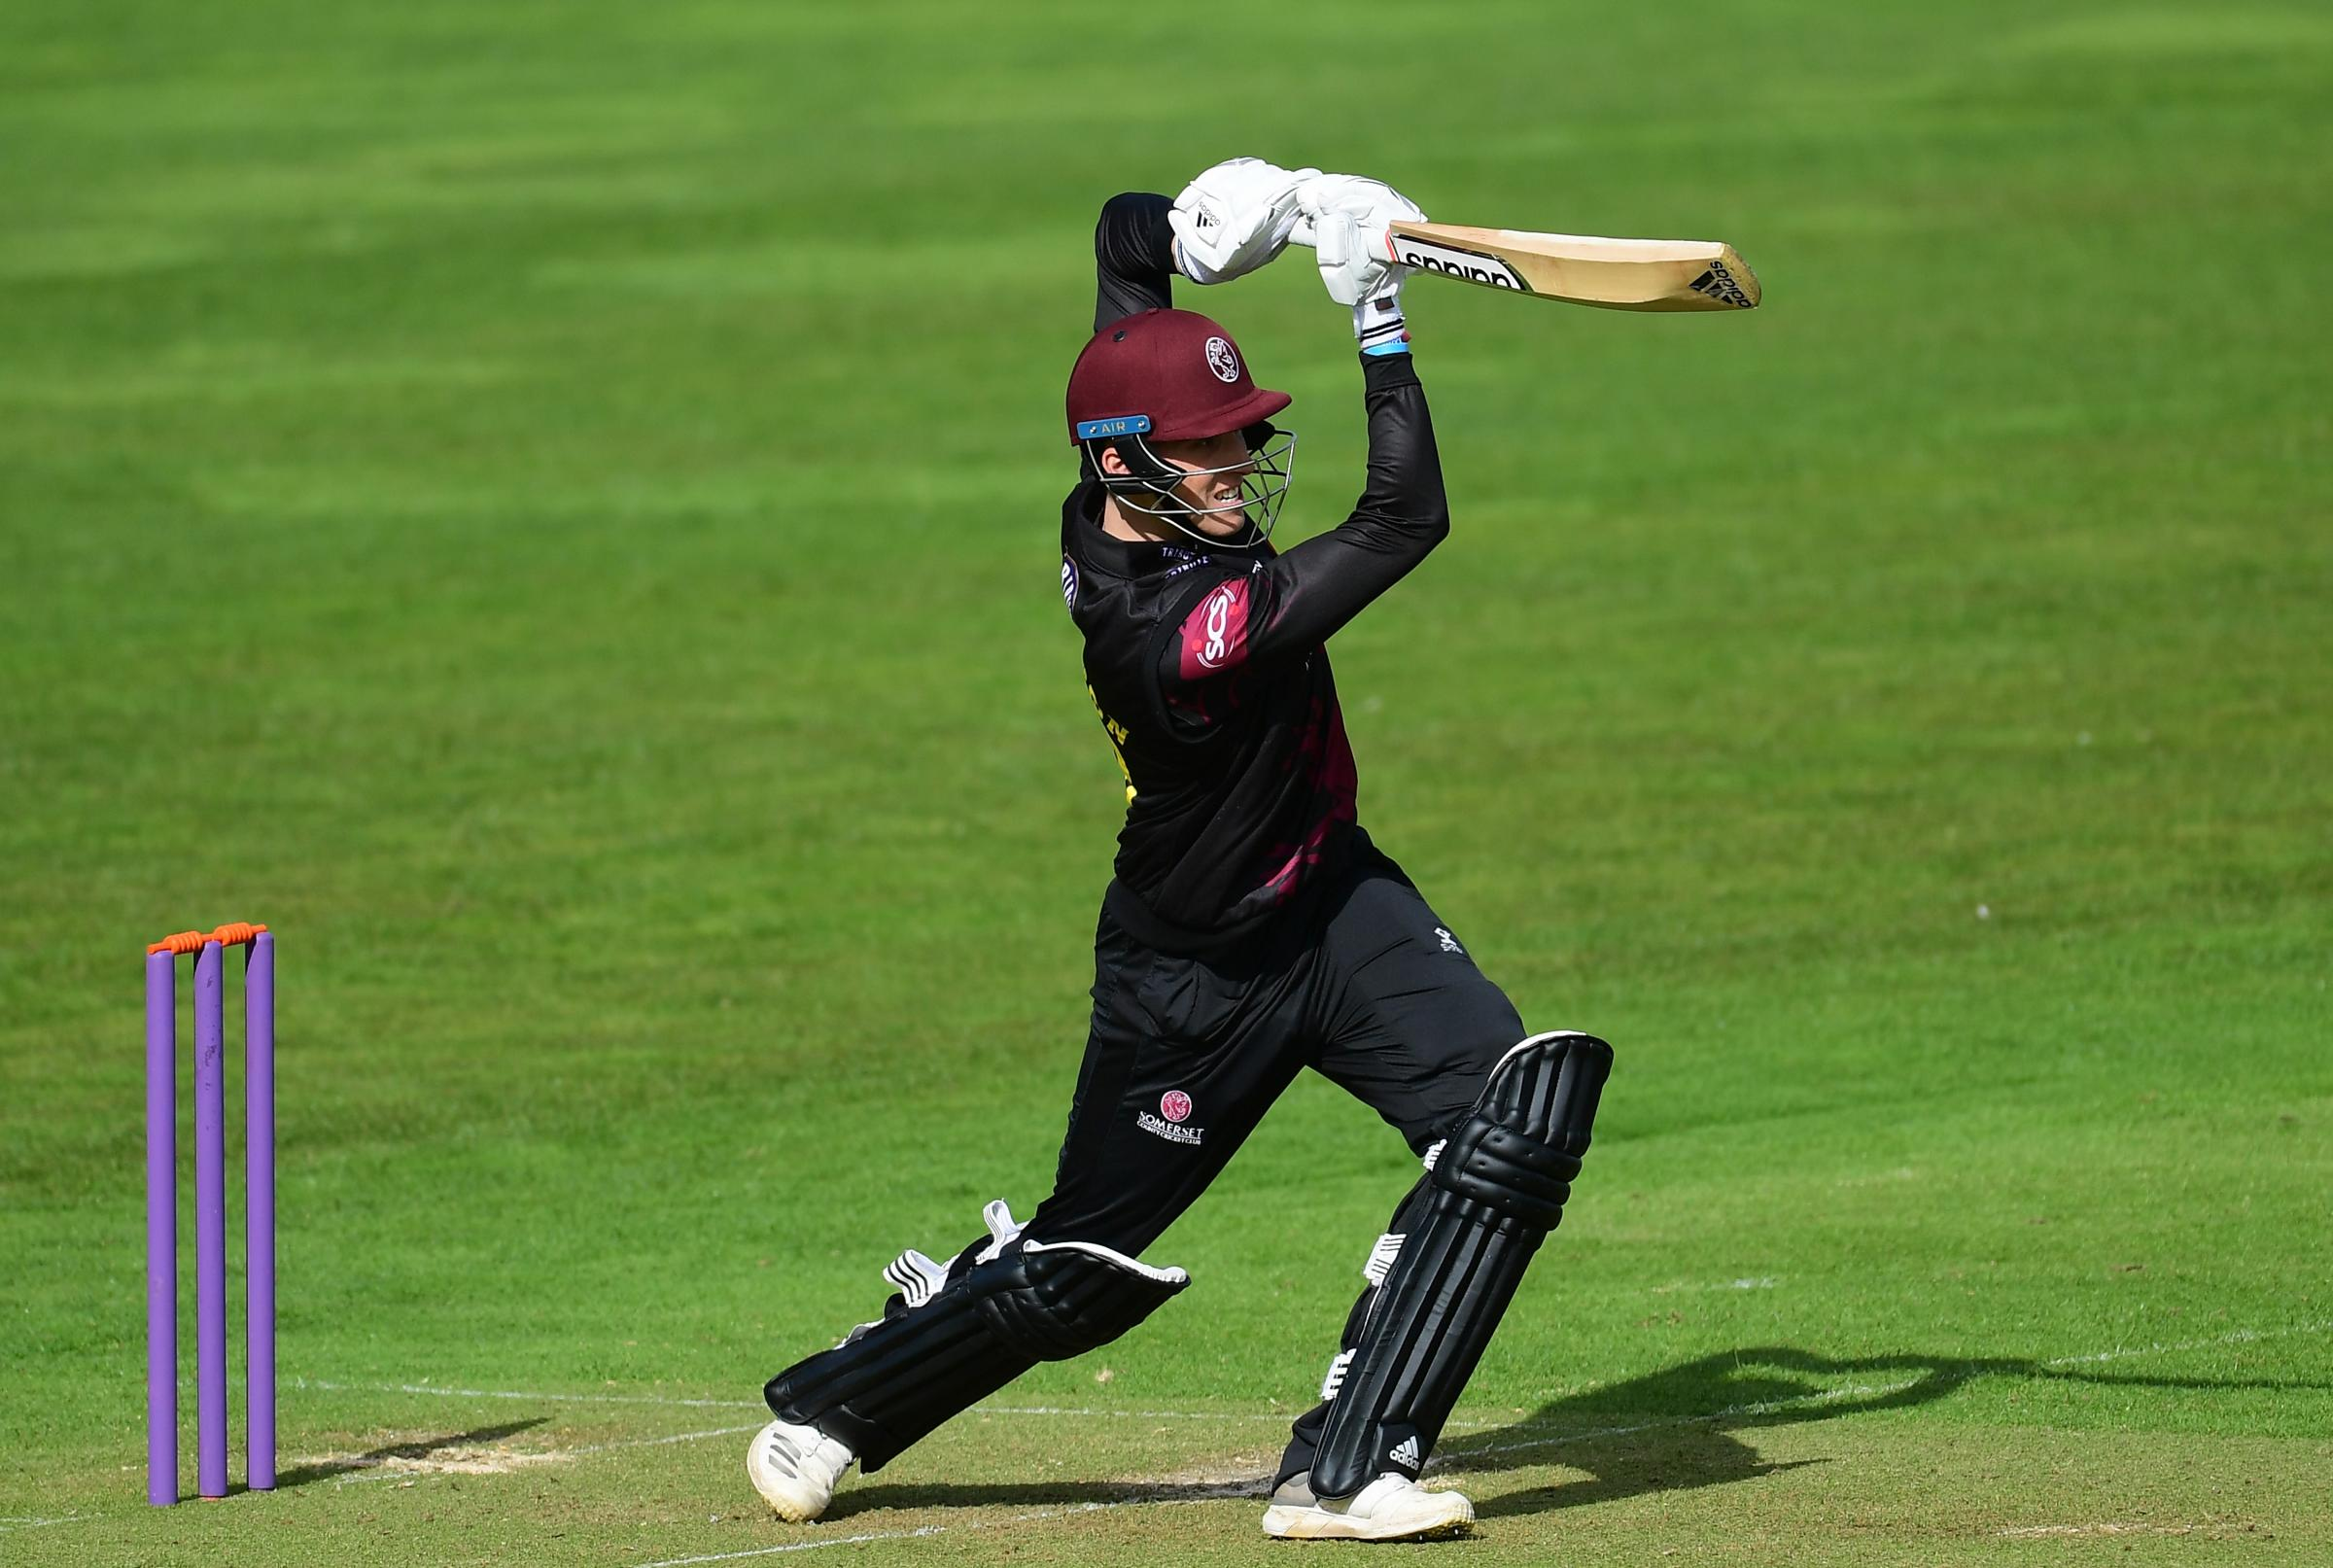 IN-FORM: Tom Banton put in another good display for Somerset. Pic: SCCC